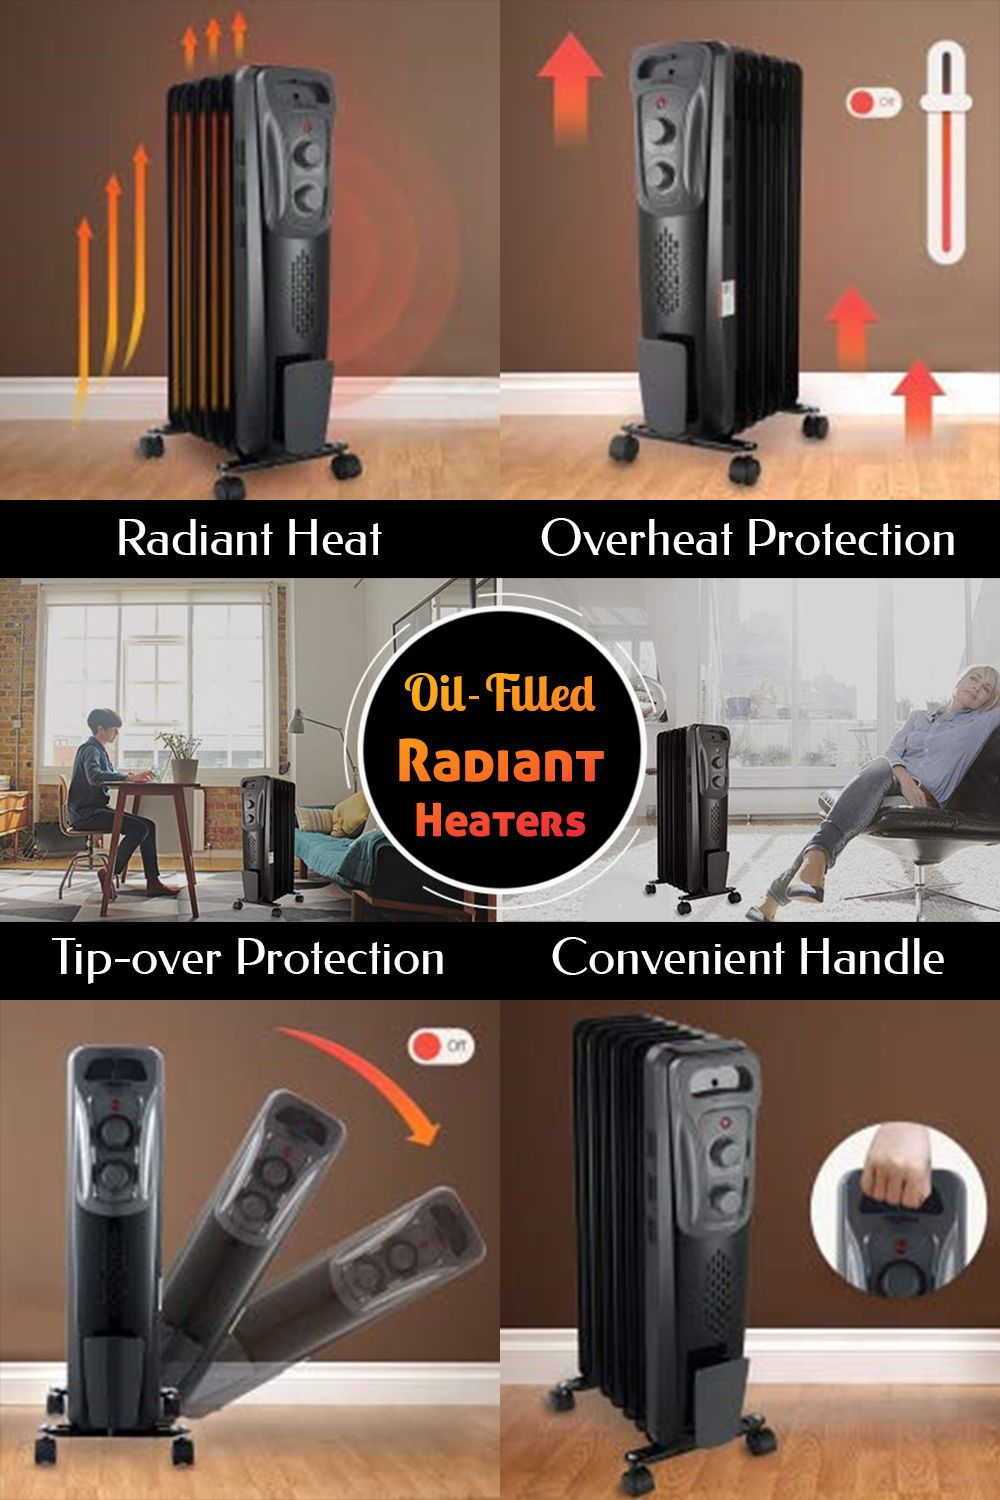 Top 10 Oil Filled Radiant Heaters April 2020 Reviews And Buyers Guide Oil Heater Oil Filled Radiator Radiant Heaters